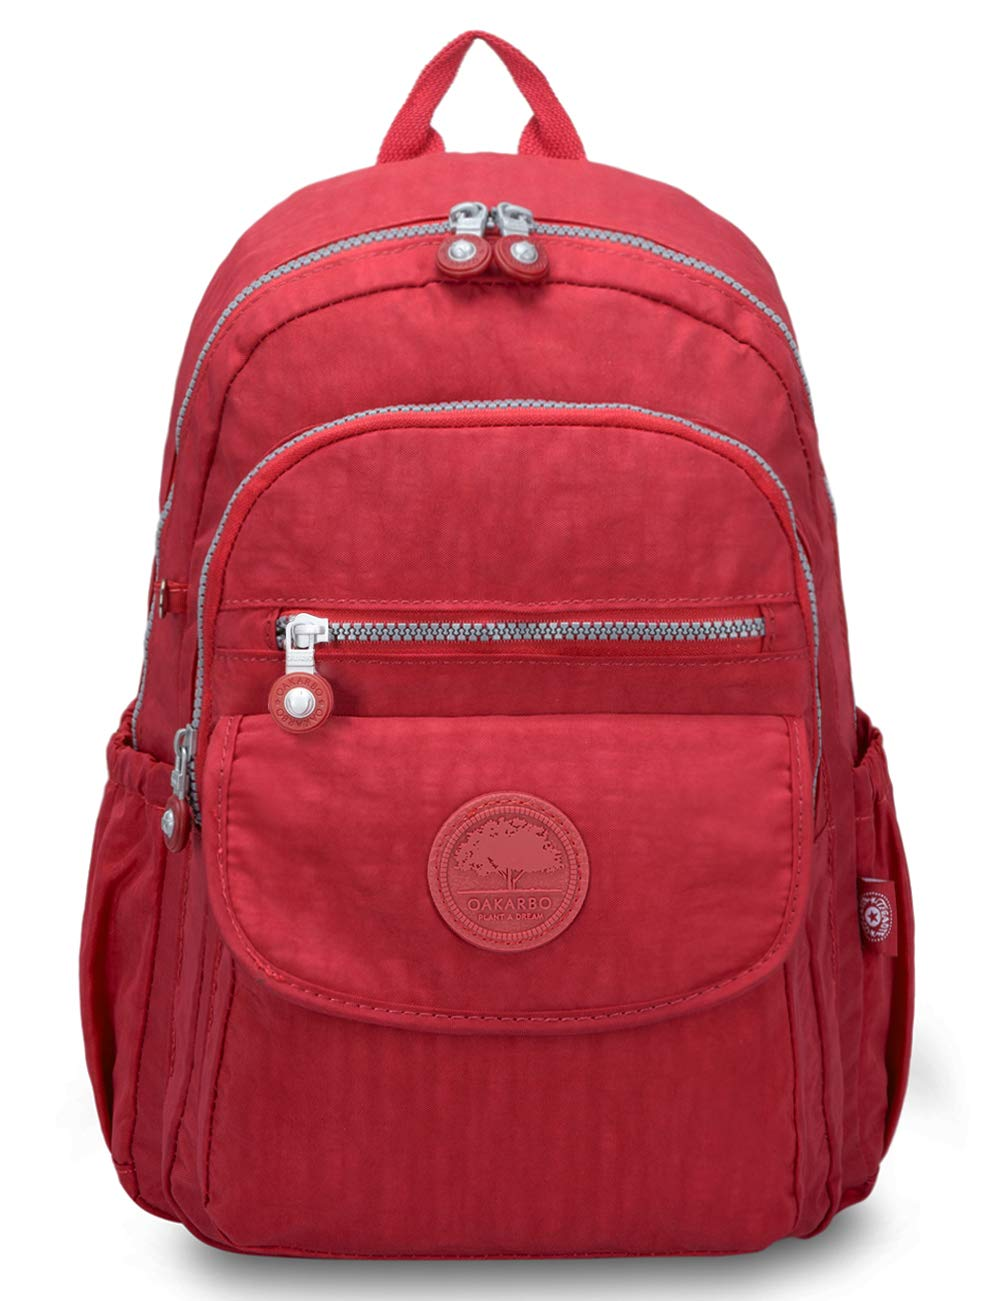 Oakarbo Backpack Mini Junior School Bag Cute Nylon Travel Daypack (1503 Red/Small)